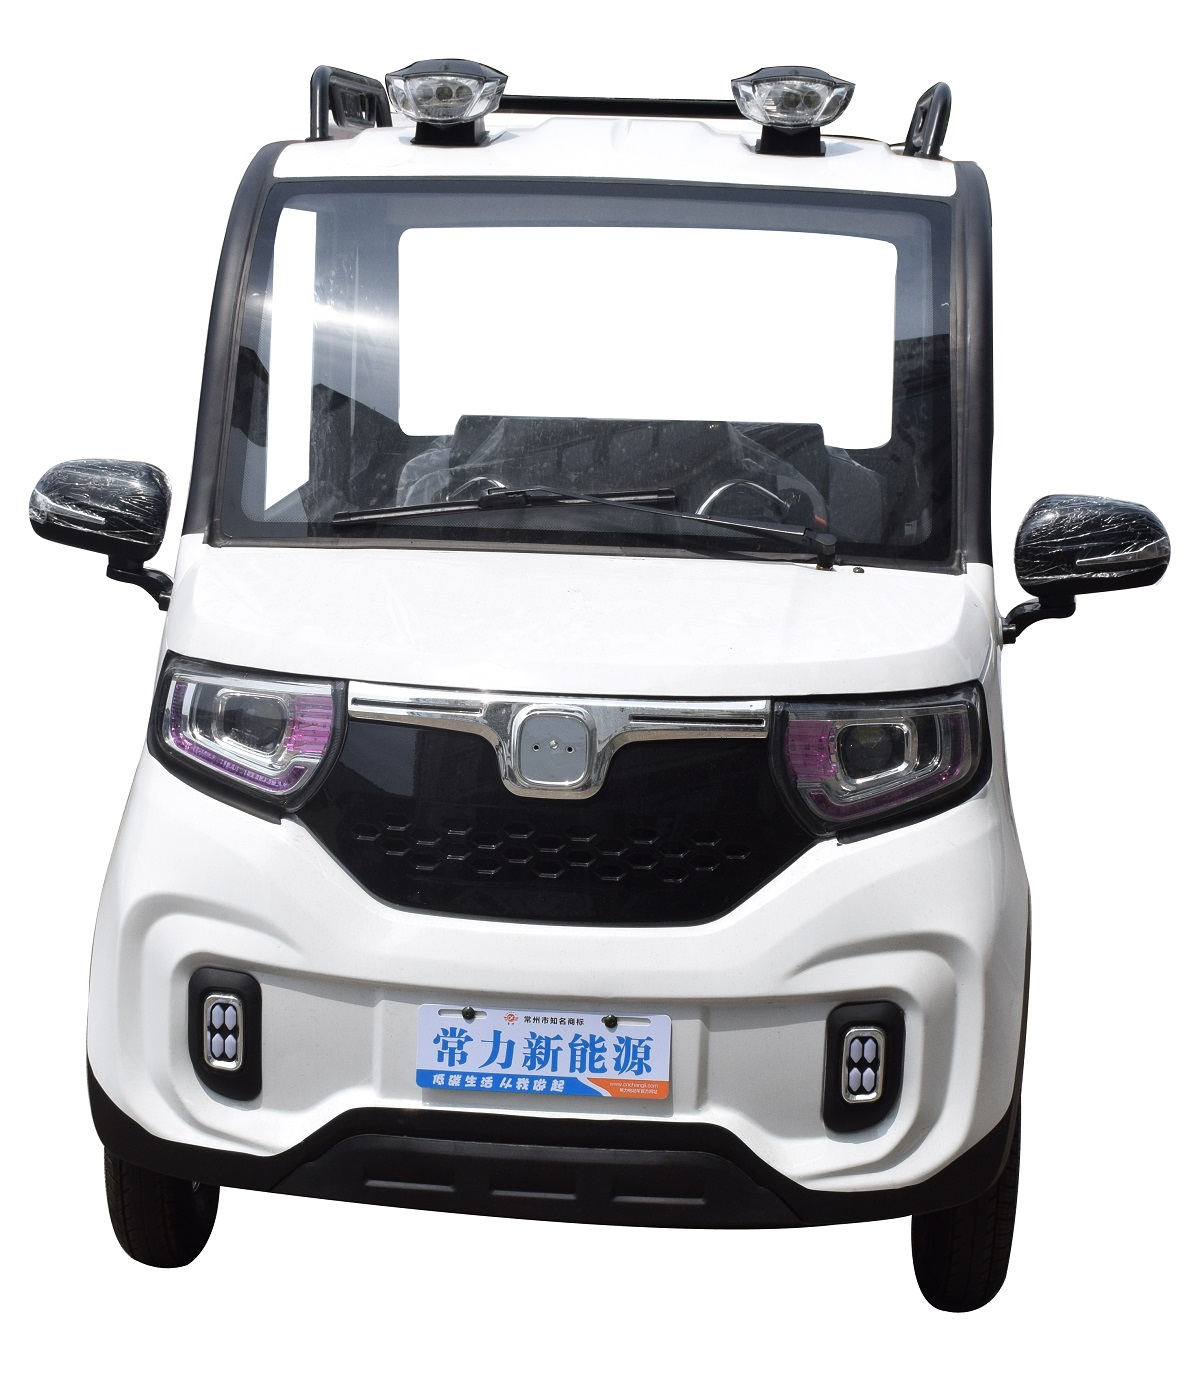 changli electric car with air conditioning Electric two-door and three-seater mobility vehicle